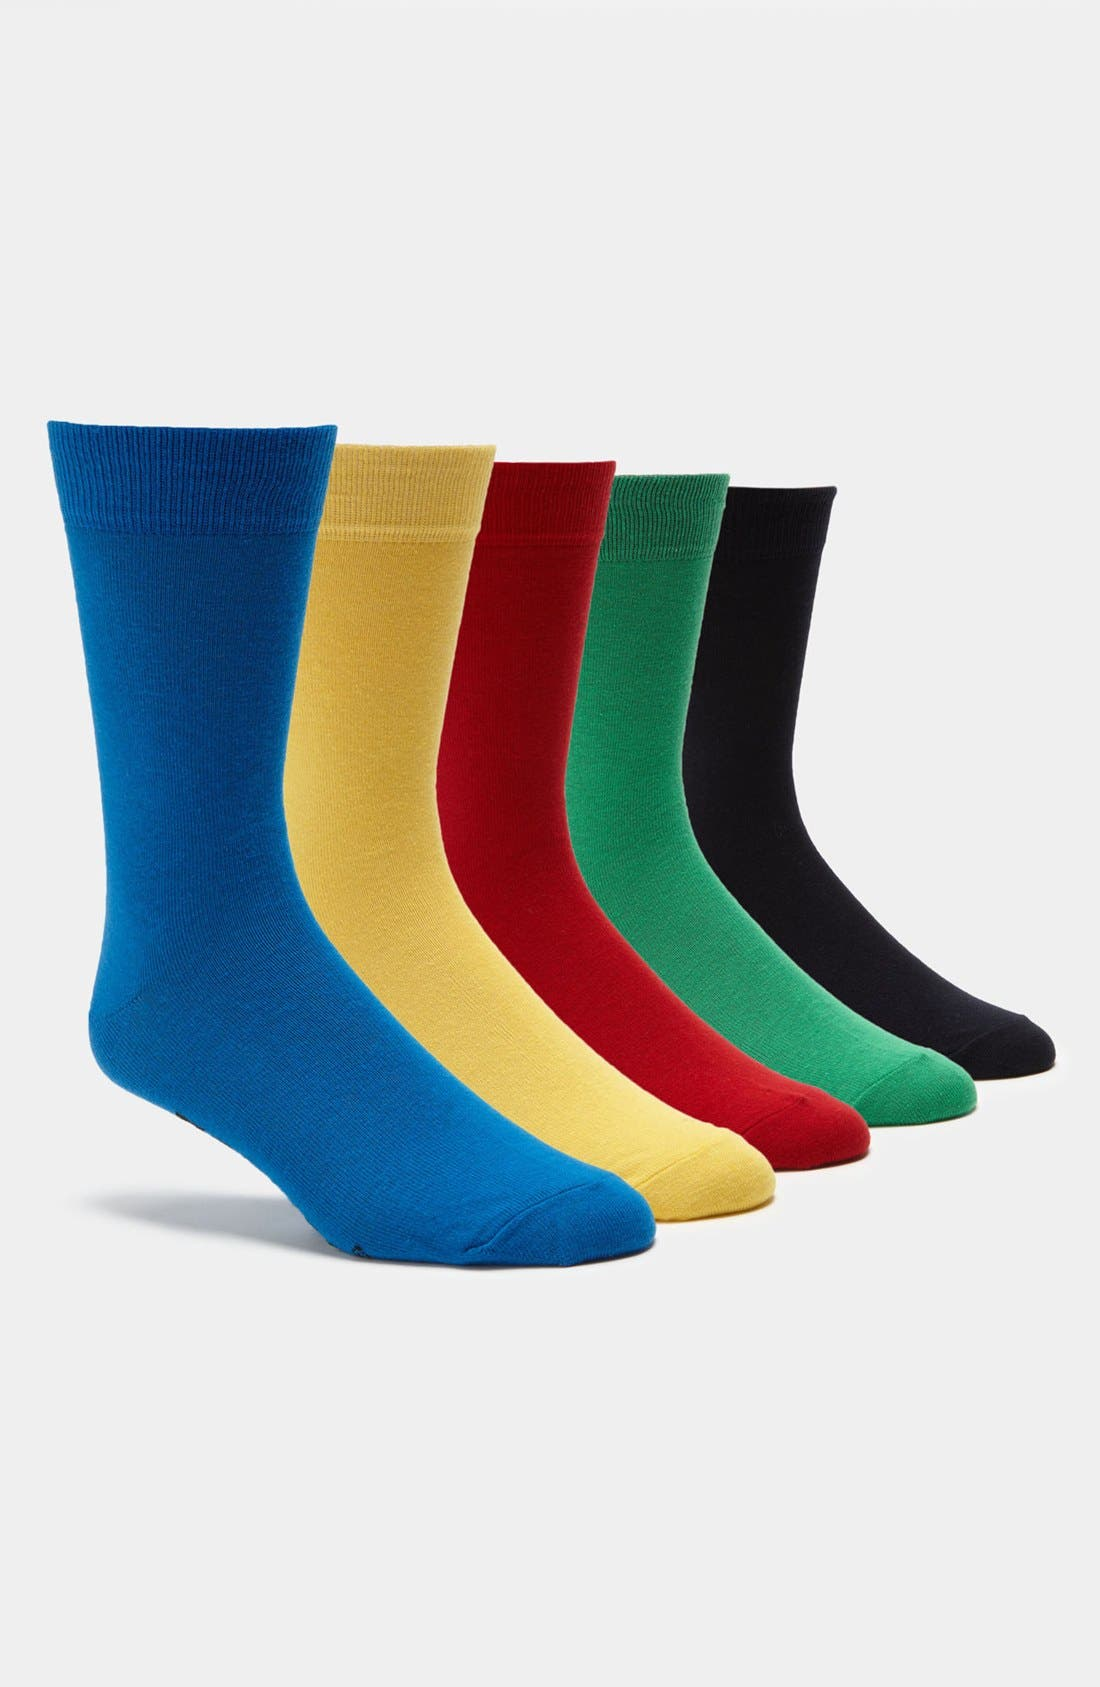 Alternate Image 1 Selected - Topman Bright Socks (5-Pack)